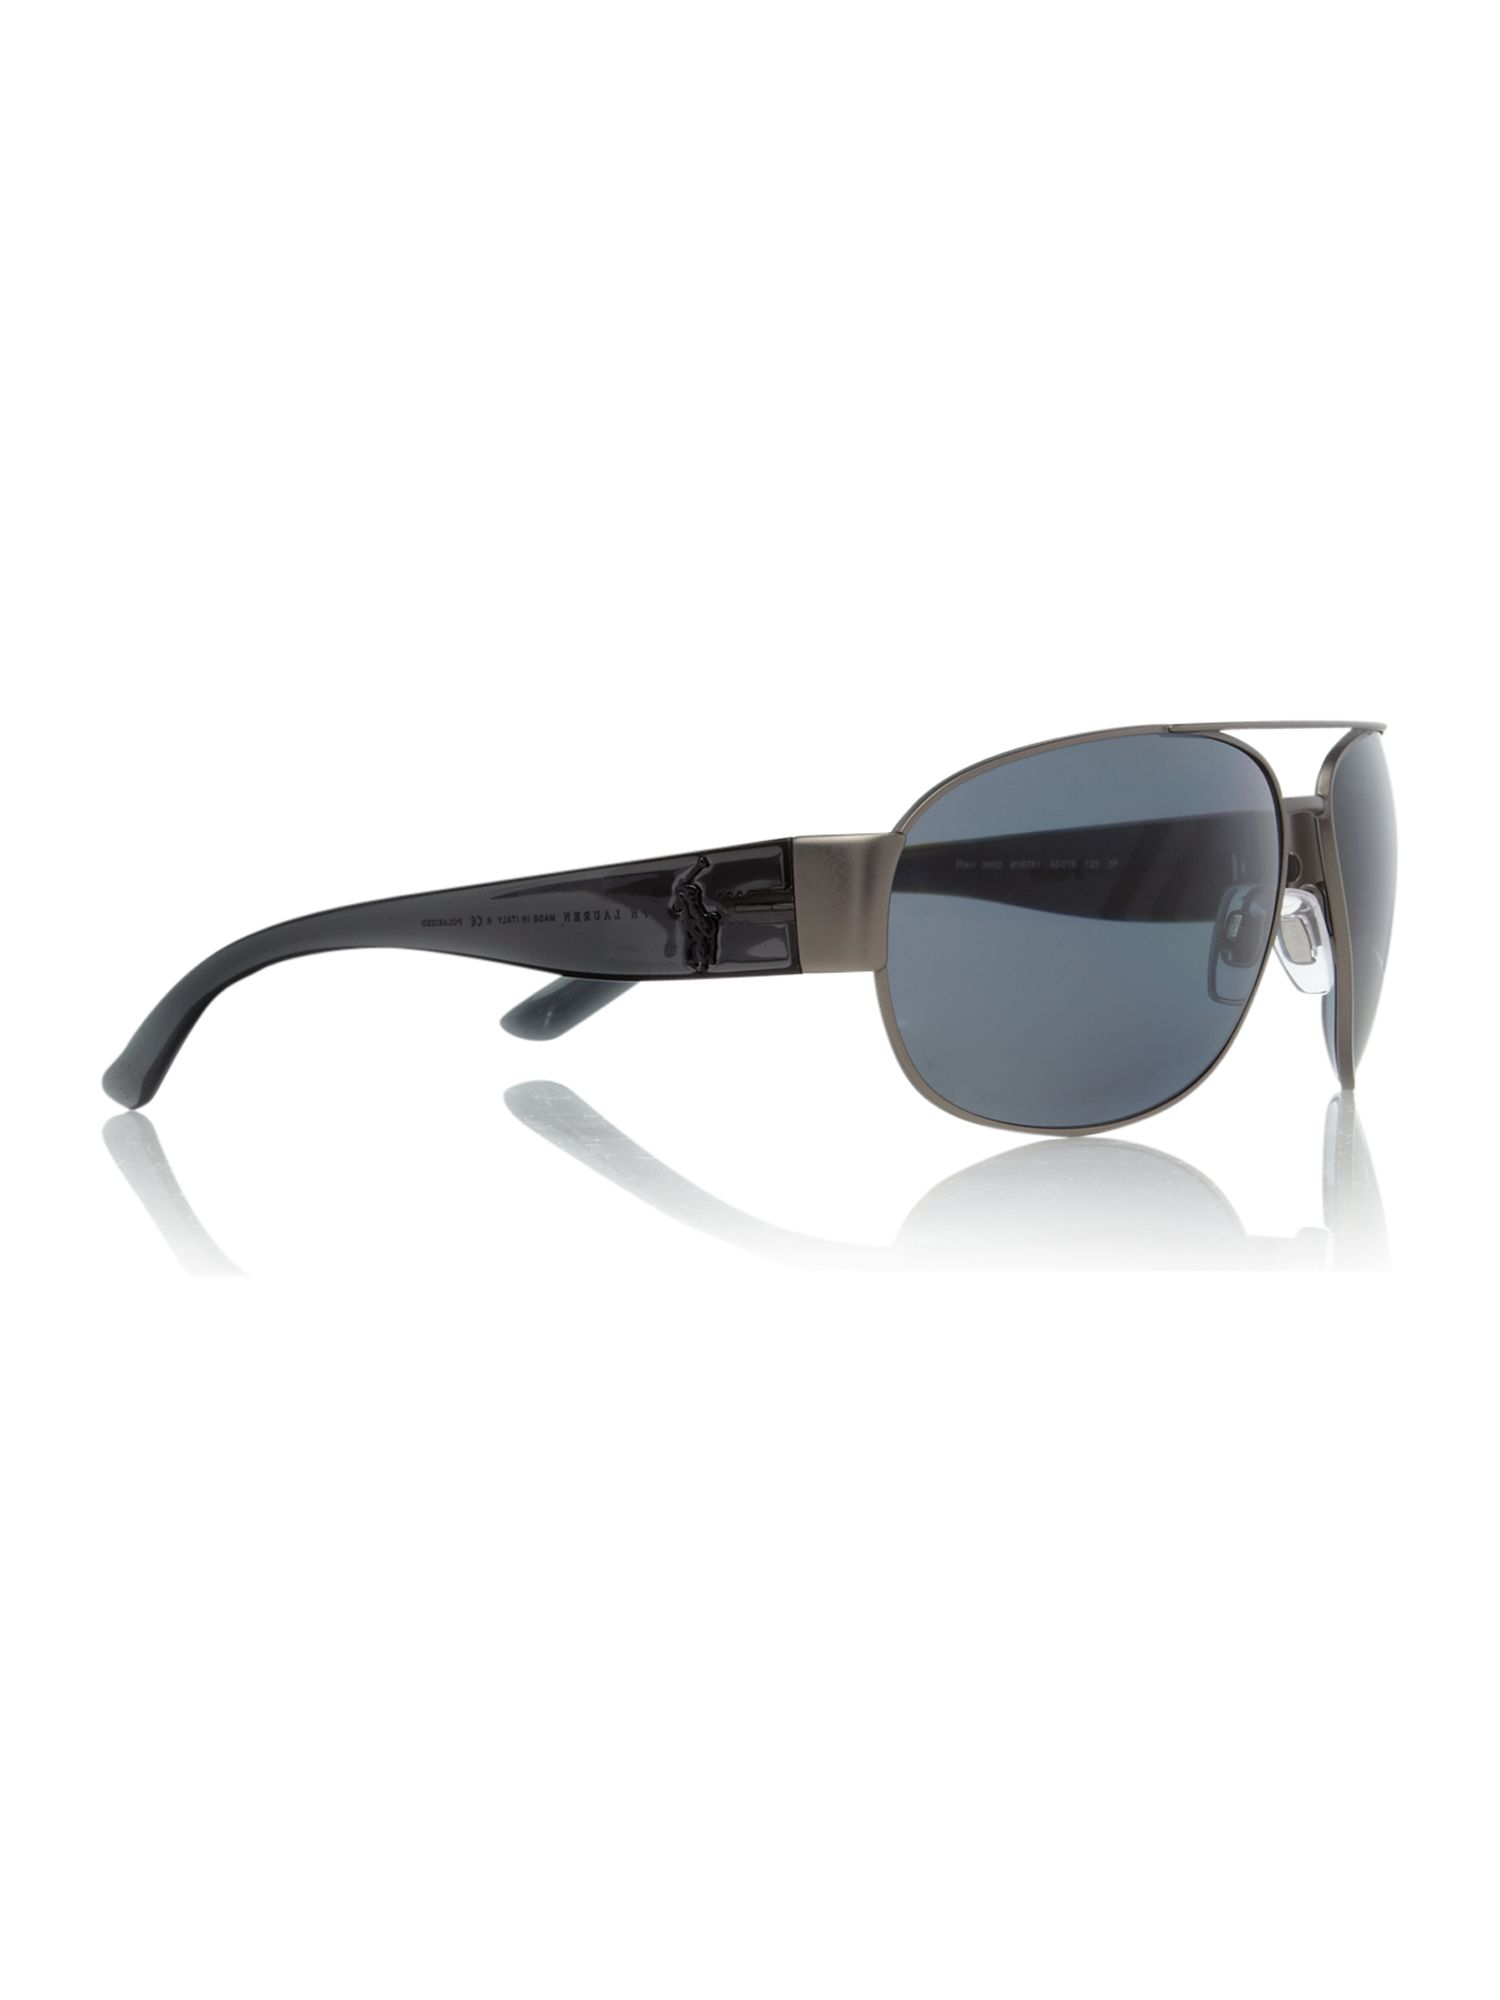 Oakley Latch Squared >> Lyst - Polo Ralph Lauren Mens Sunglasses in Blue for Men